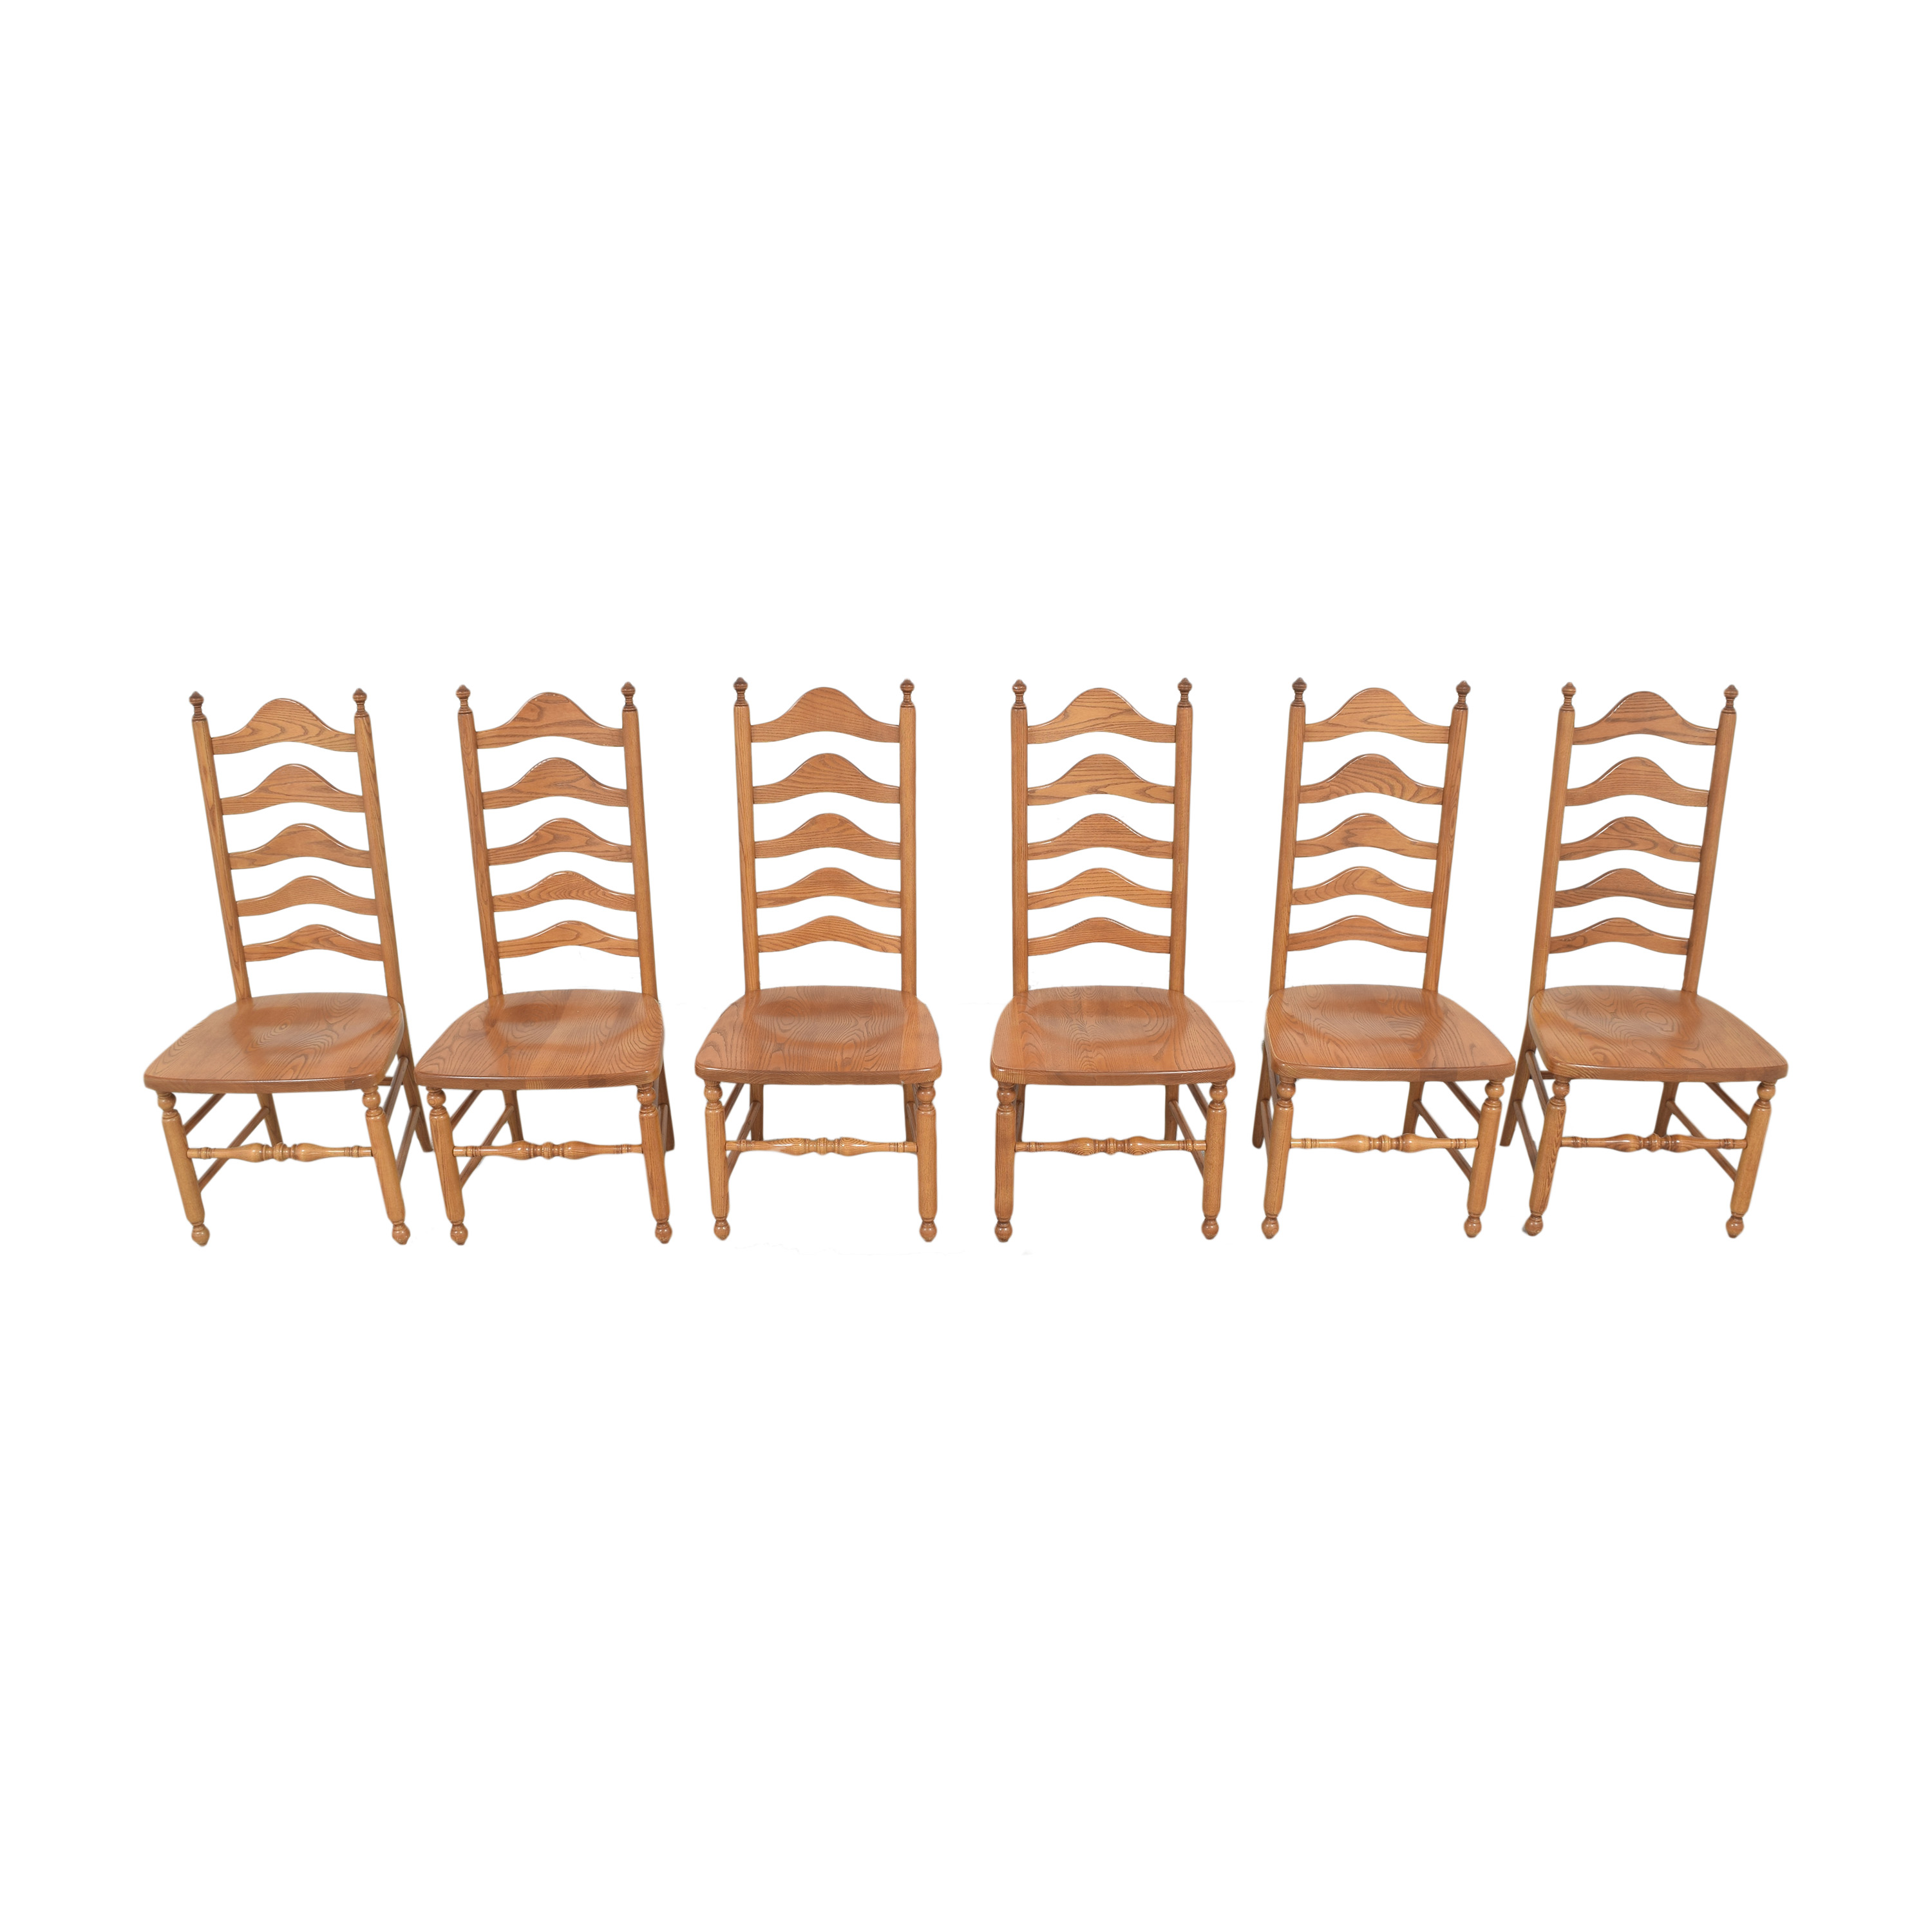 S. Bent & Bros S. Bent & Bros Ladderback Dining Chairs second hand